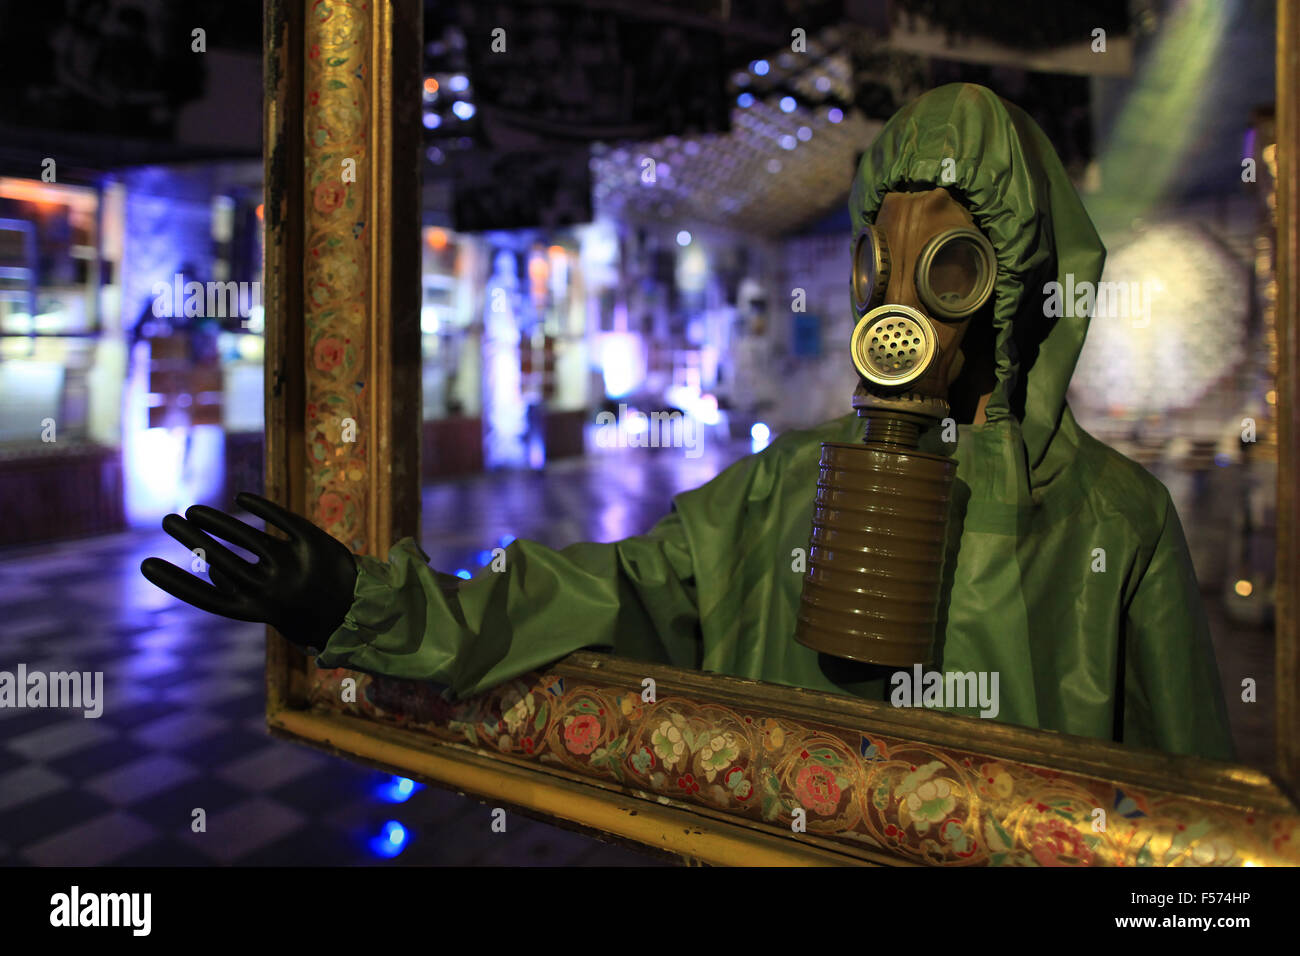 A scale model of a liquidator from the Chernobyl disaster exhibited in the Ukrainian National Chornobyl Museum. - Stock Image